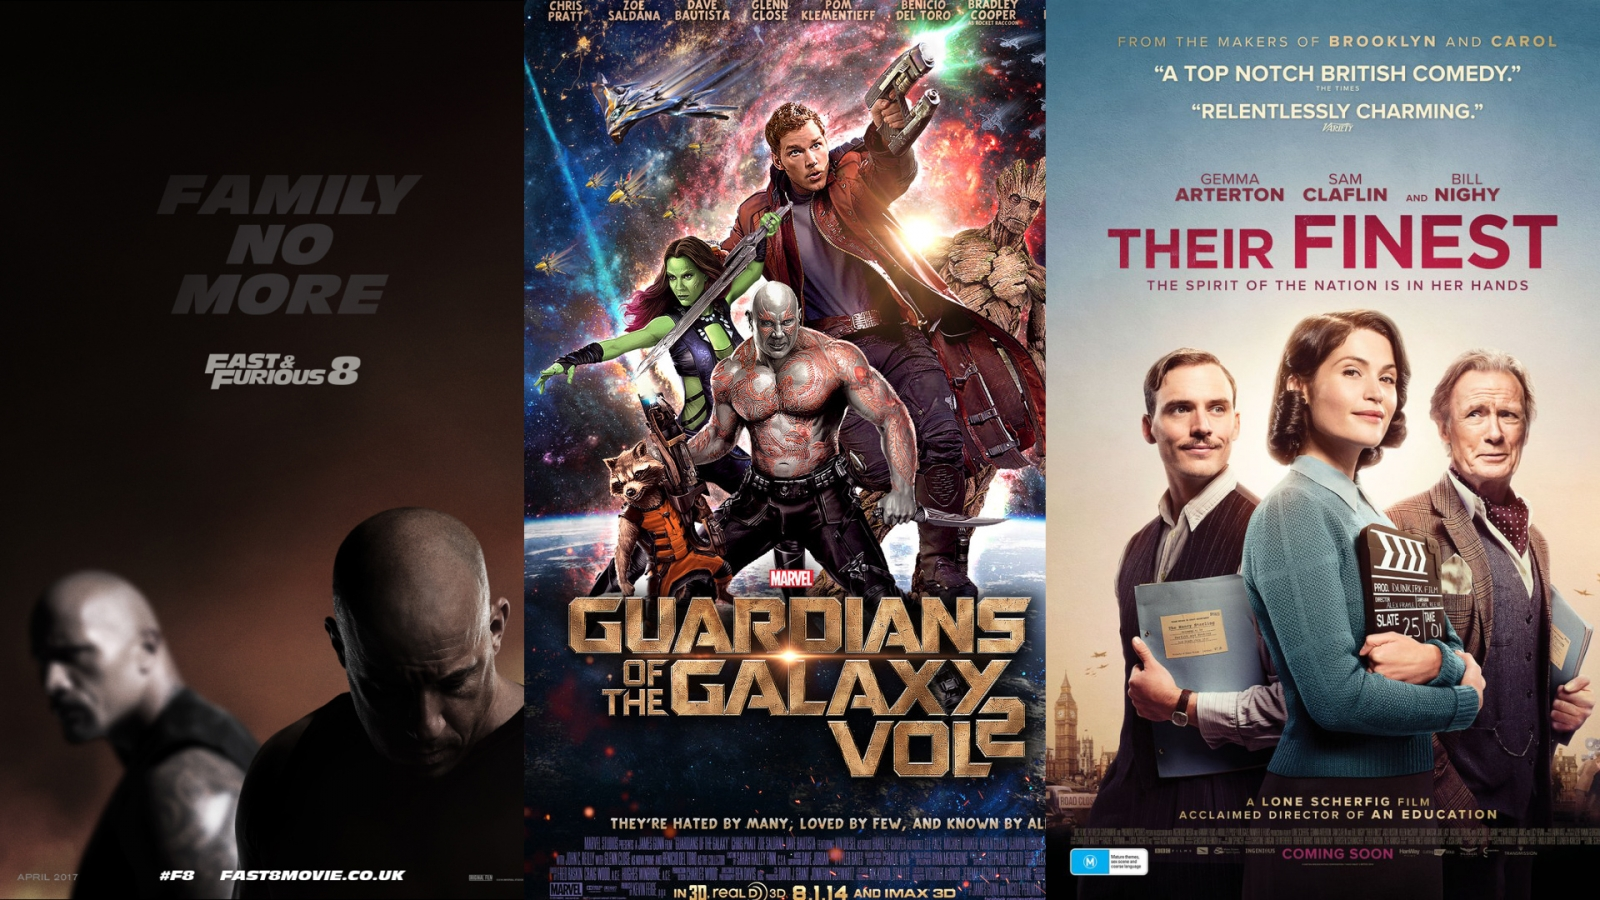 April film preview: Fast & Furious 8, Their Finest and Guardians of the Galaxy Vol 2